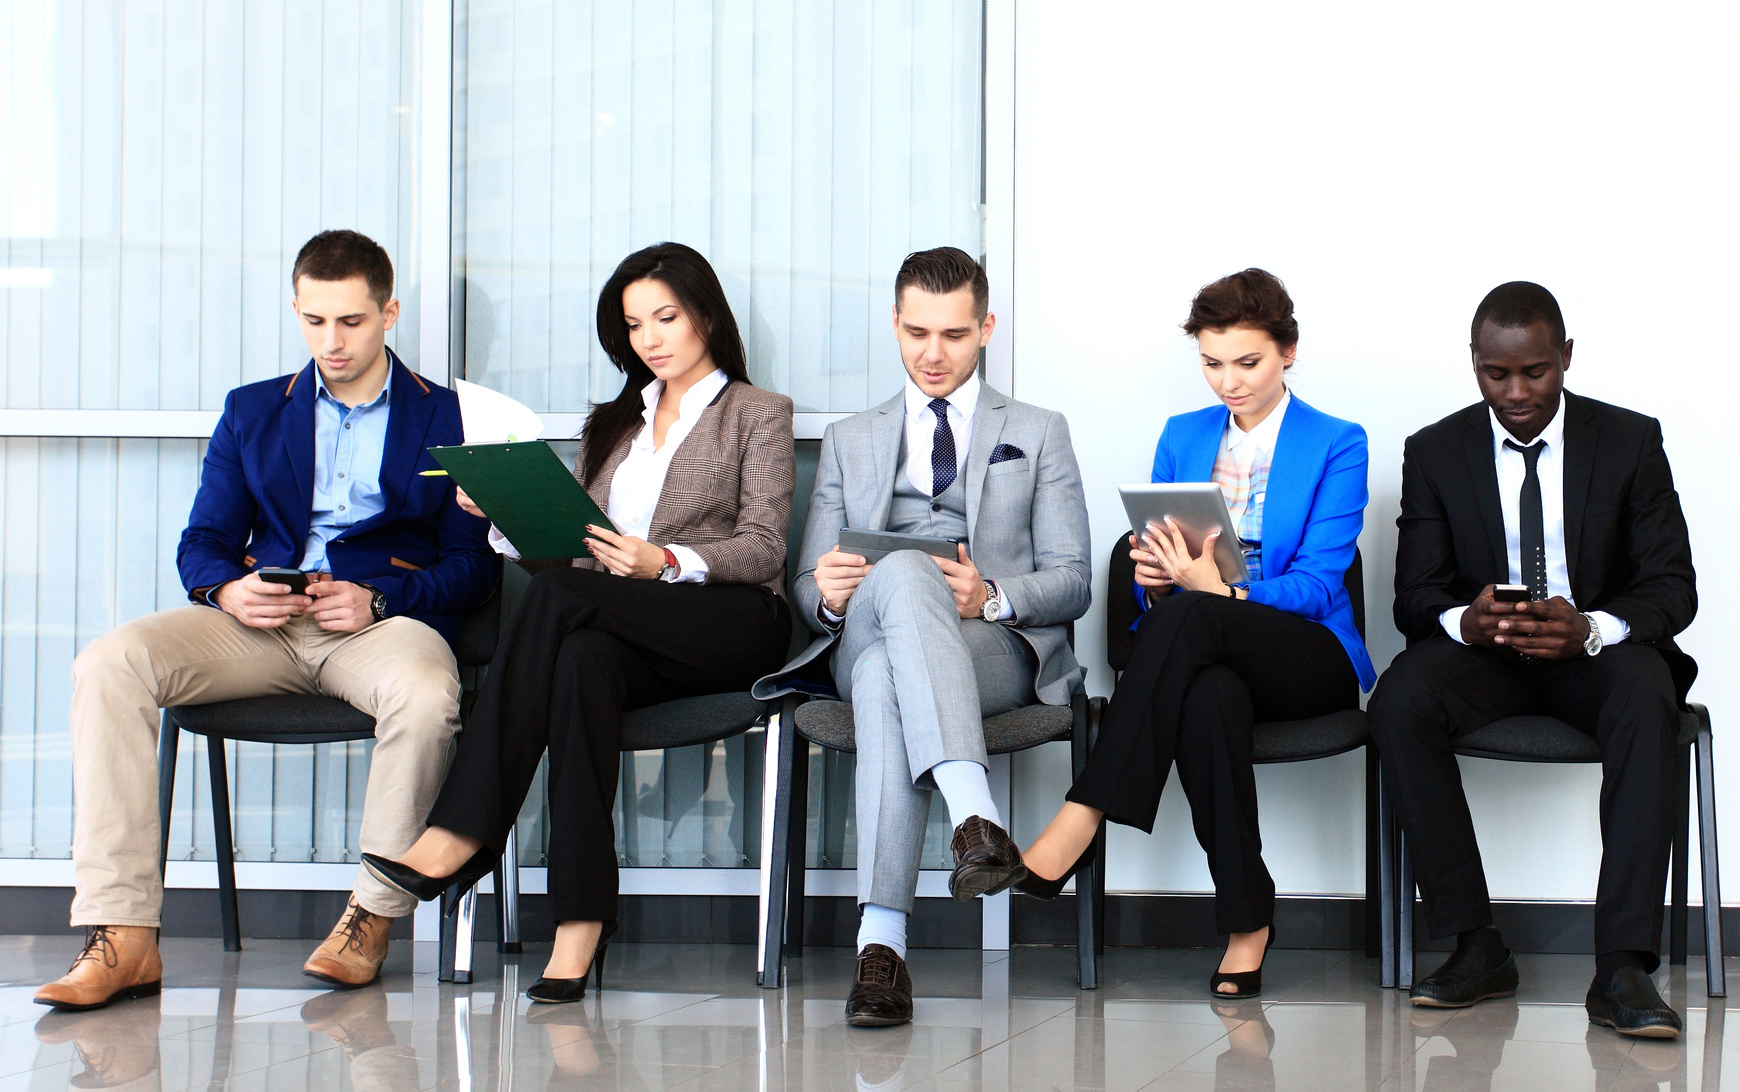 promoting the hiring of minorities in the workplace A new ranking from calvert investments says citigroup and merck have the best records on diversity in hiring citigroup and merck get top ratings for their records on including women, minorities.